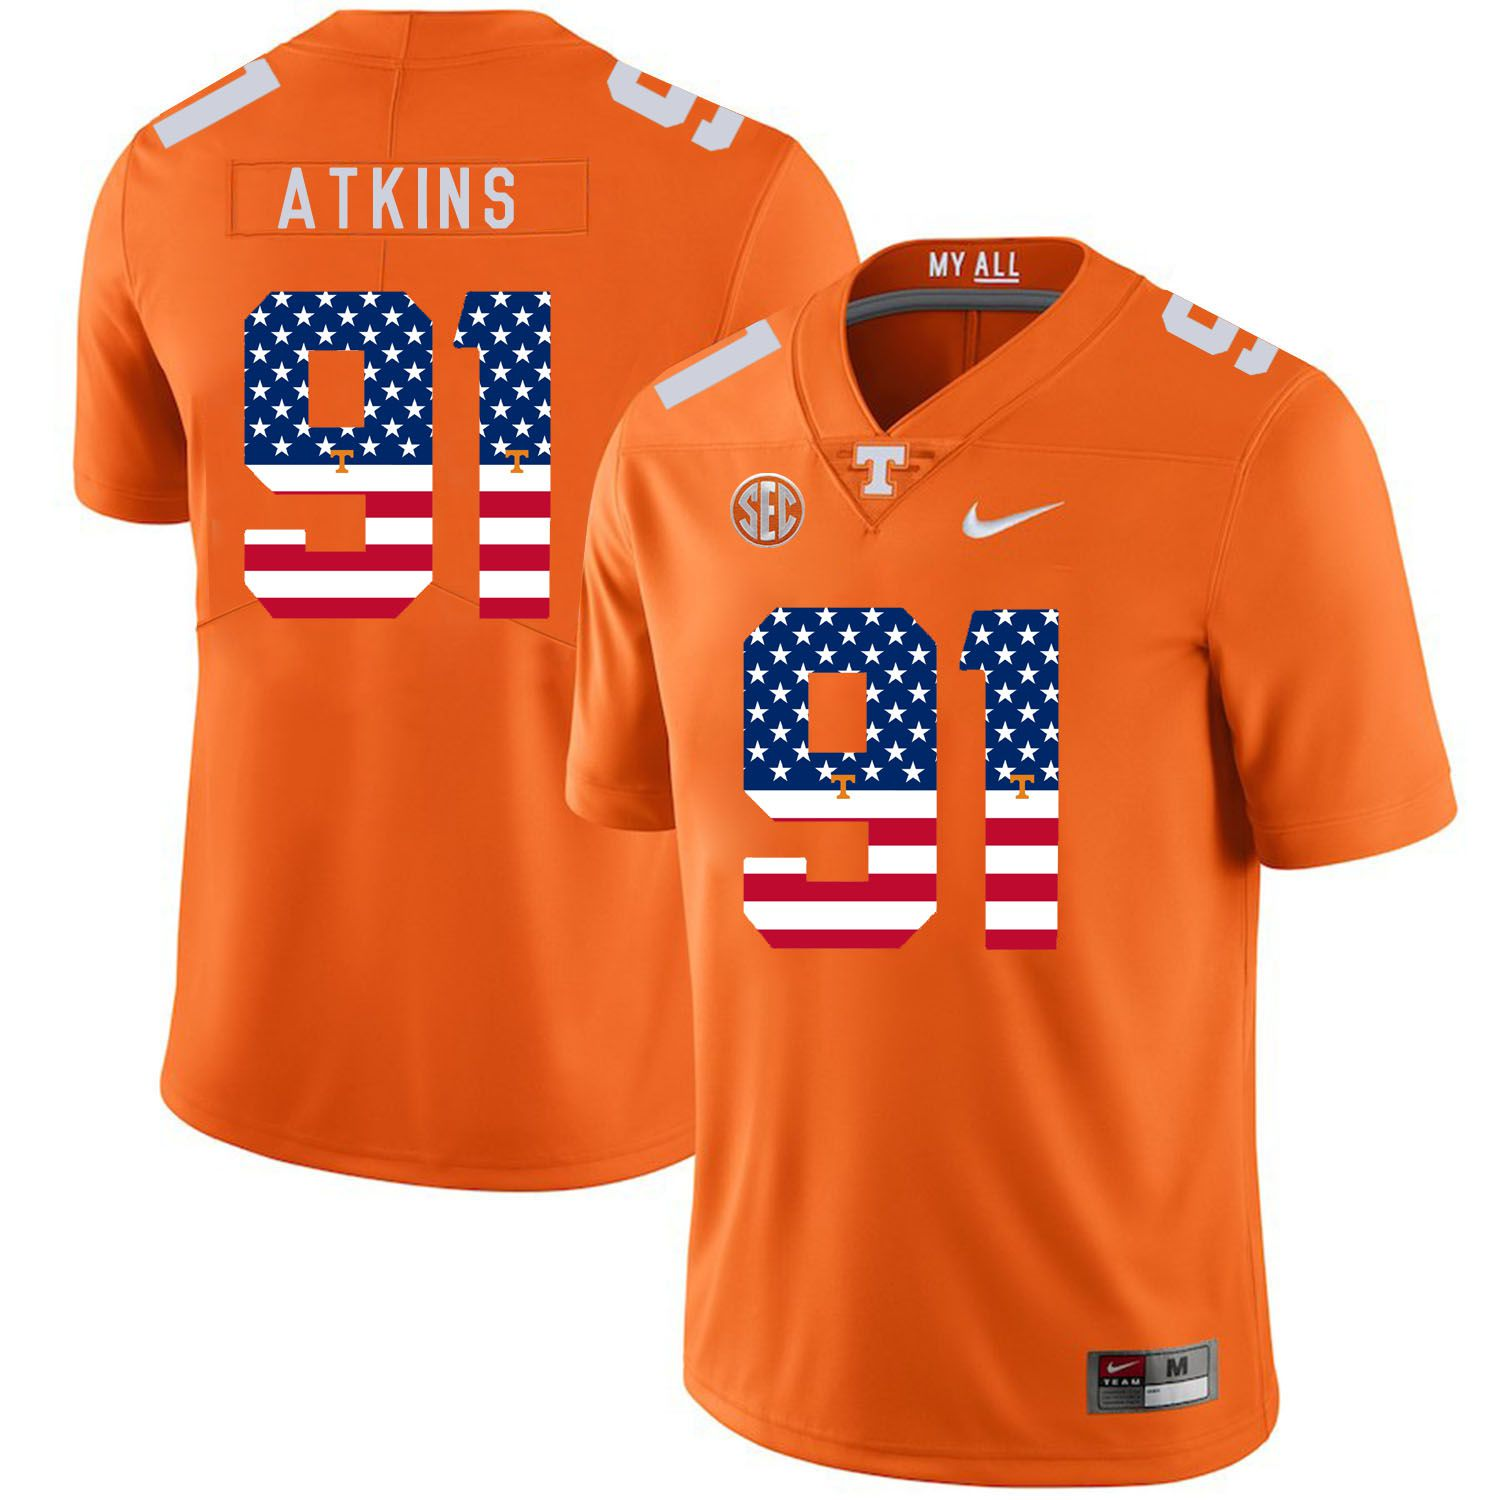 Men Tennessee Volunteers 91 Atkins Orange Flag Customized NCAA Jerseys